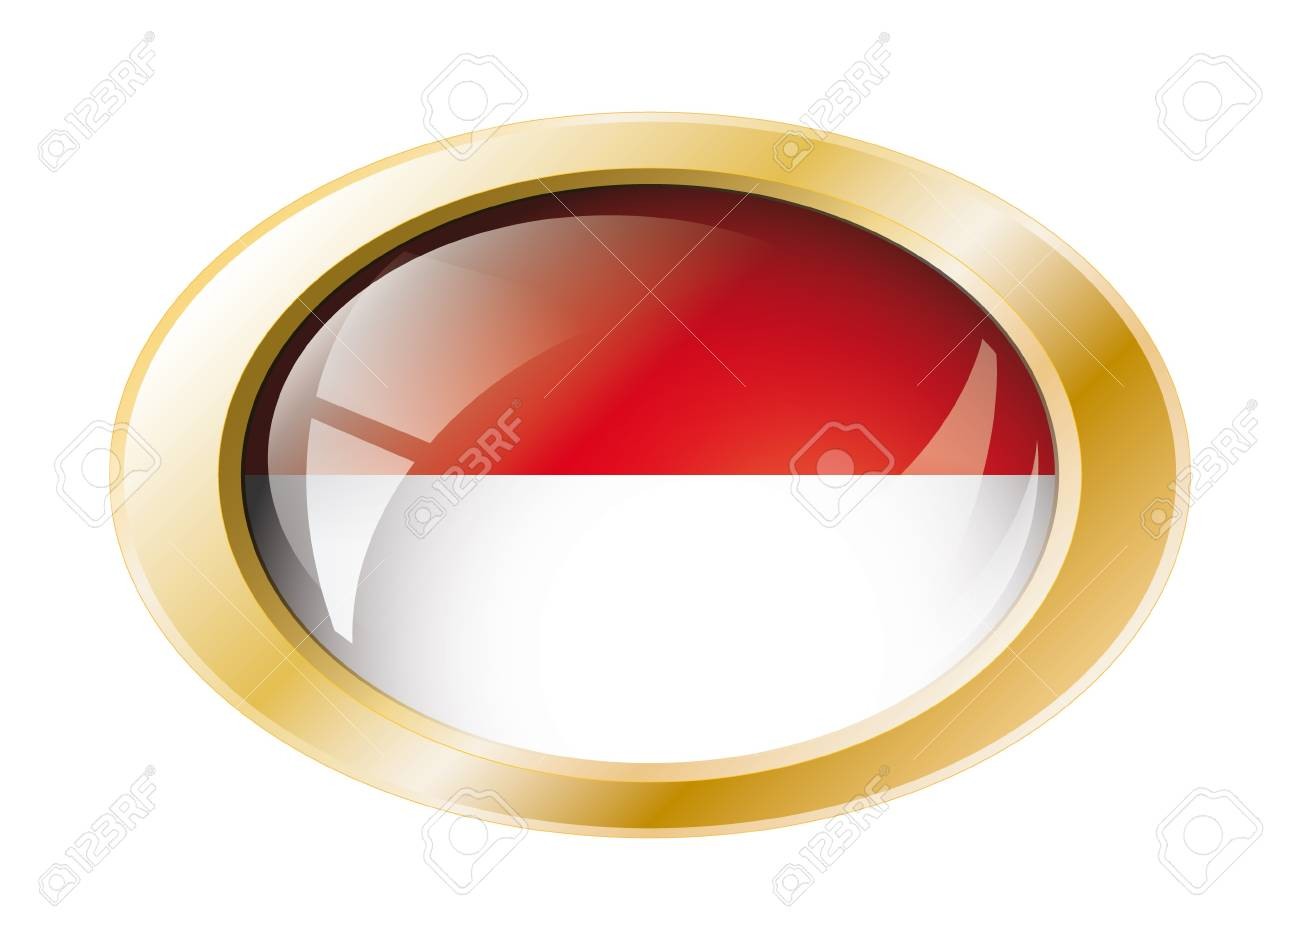 Indonesia shiny button flag with golden ring illustration. Isolated abstract object against white background. Stock Illustration - 7161292